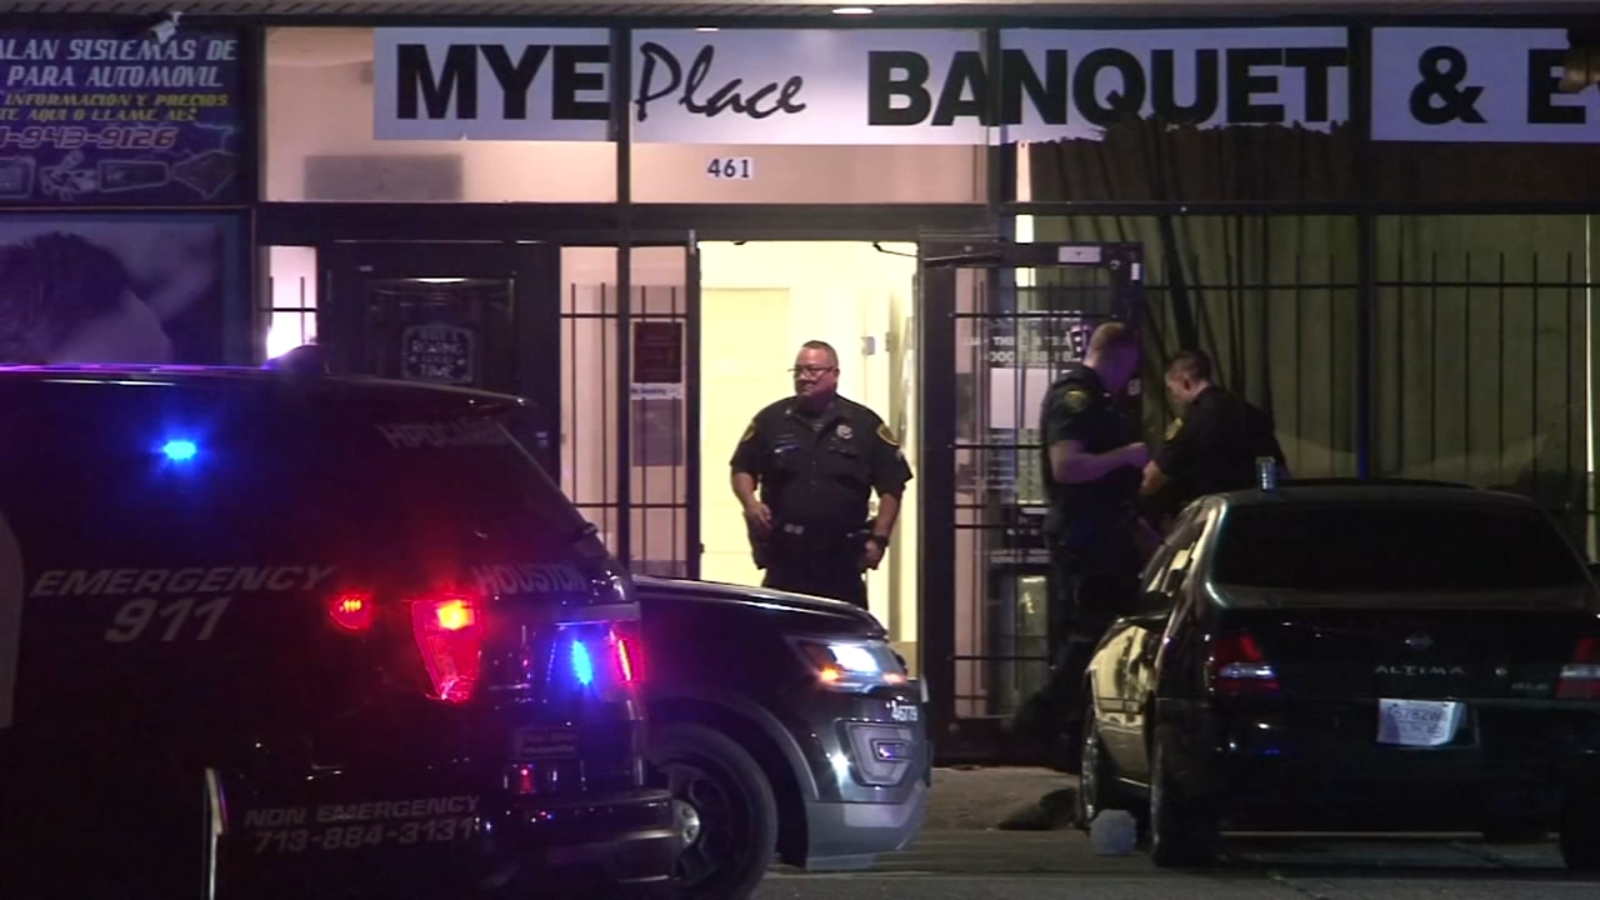 Police searching for suspect after 3 teenagers shot during party at N Houston banquet hall